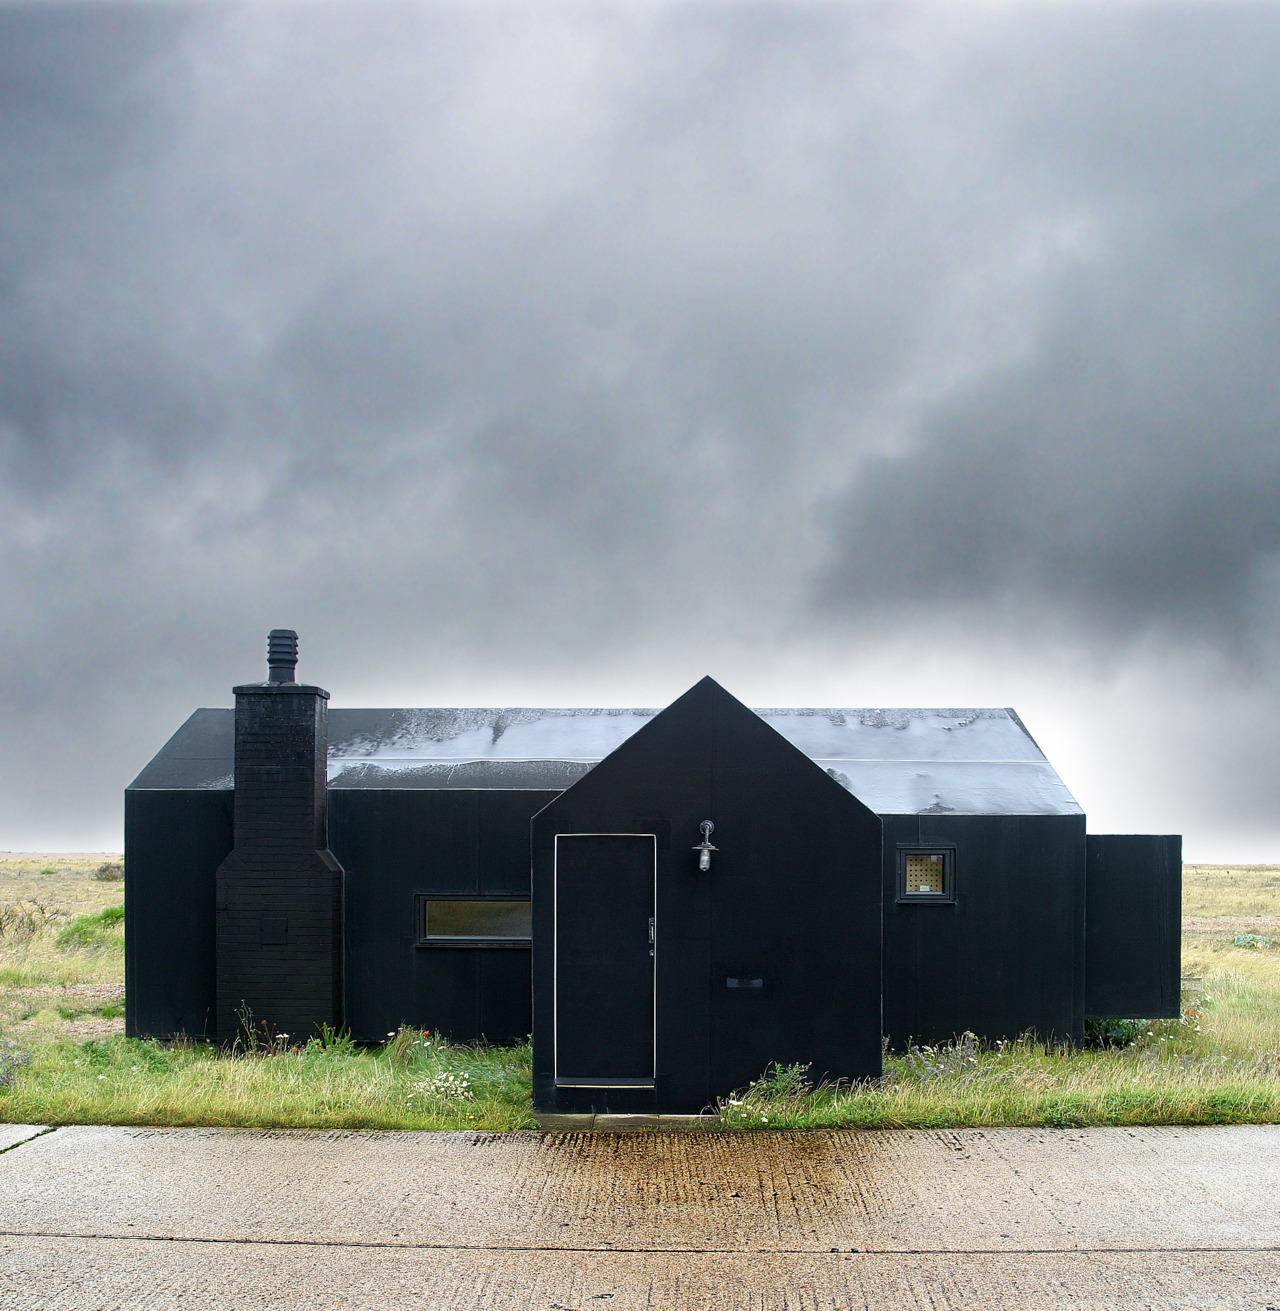 cabinporn:  The Black Rubber House, Dungeness, Kent, UK. Submitted by Paul McNeil.